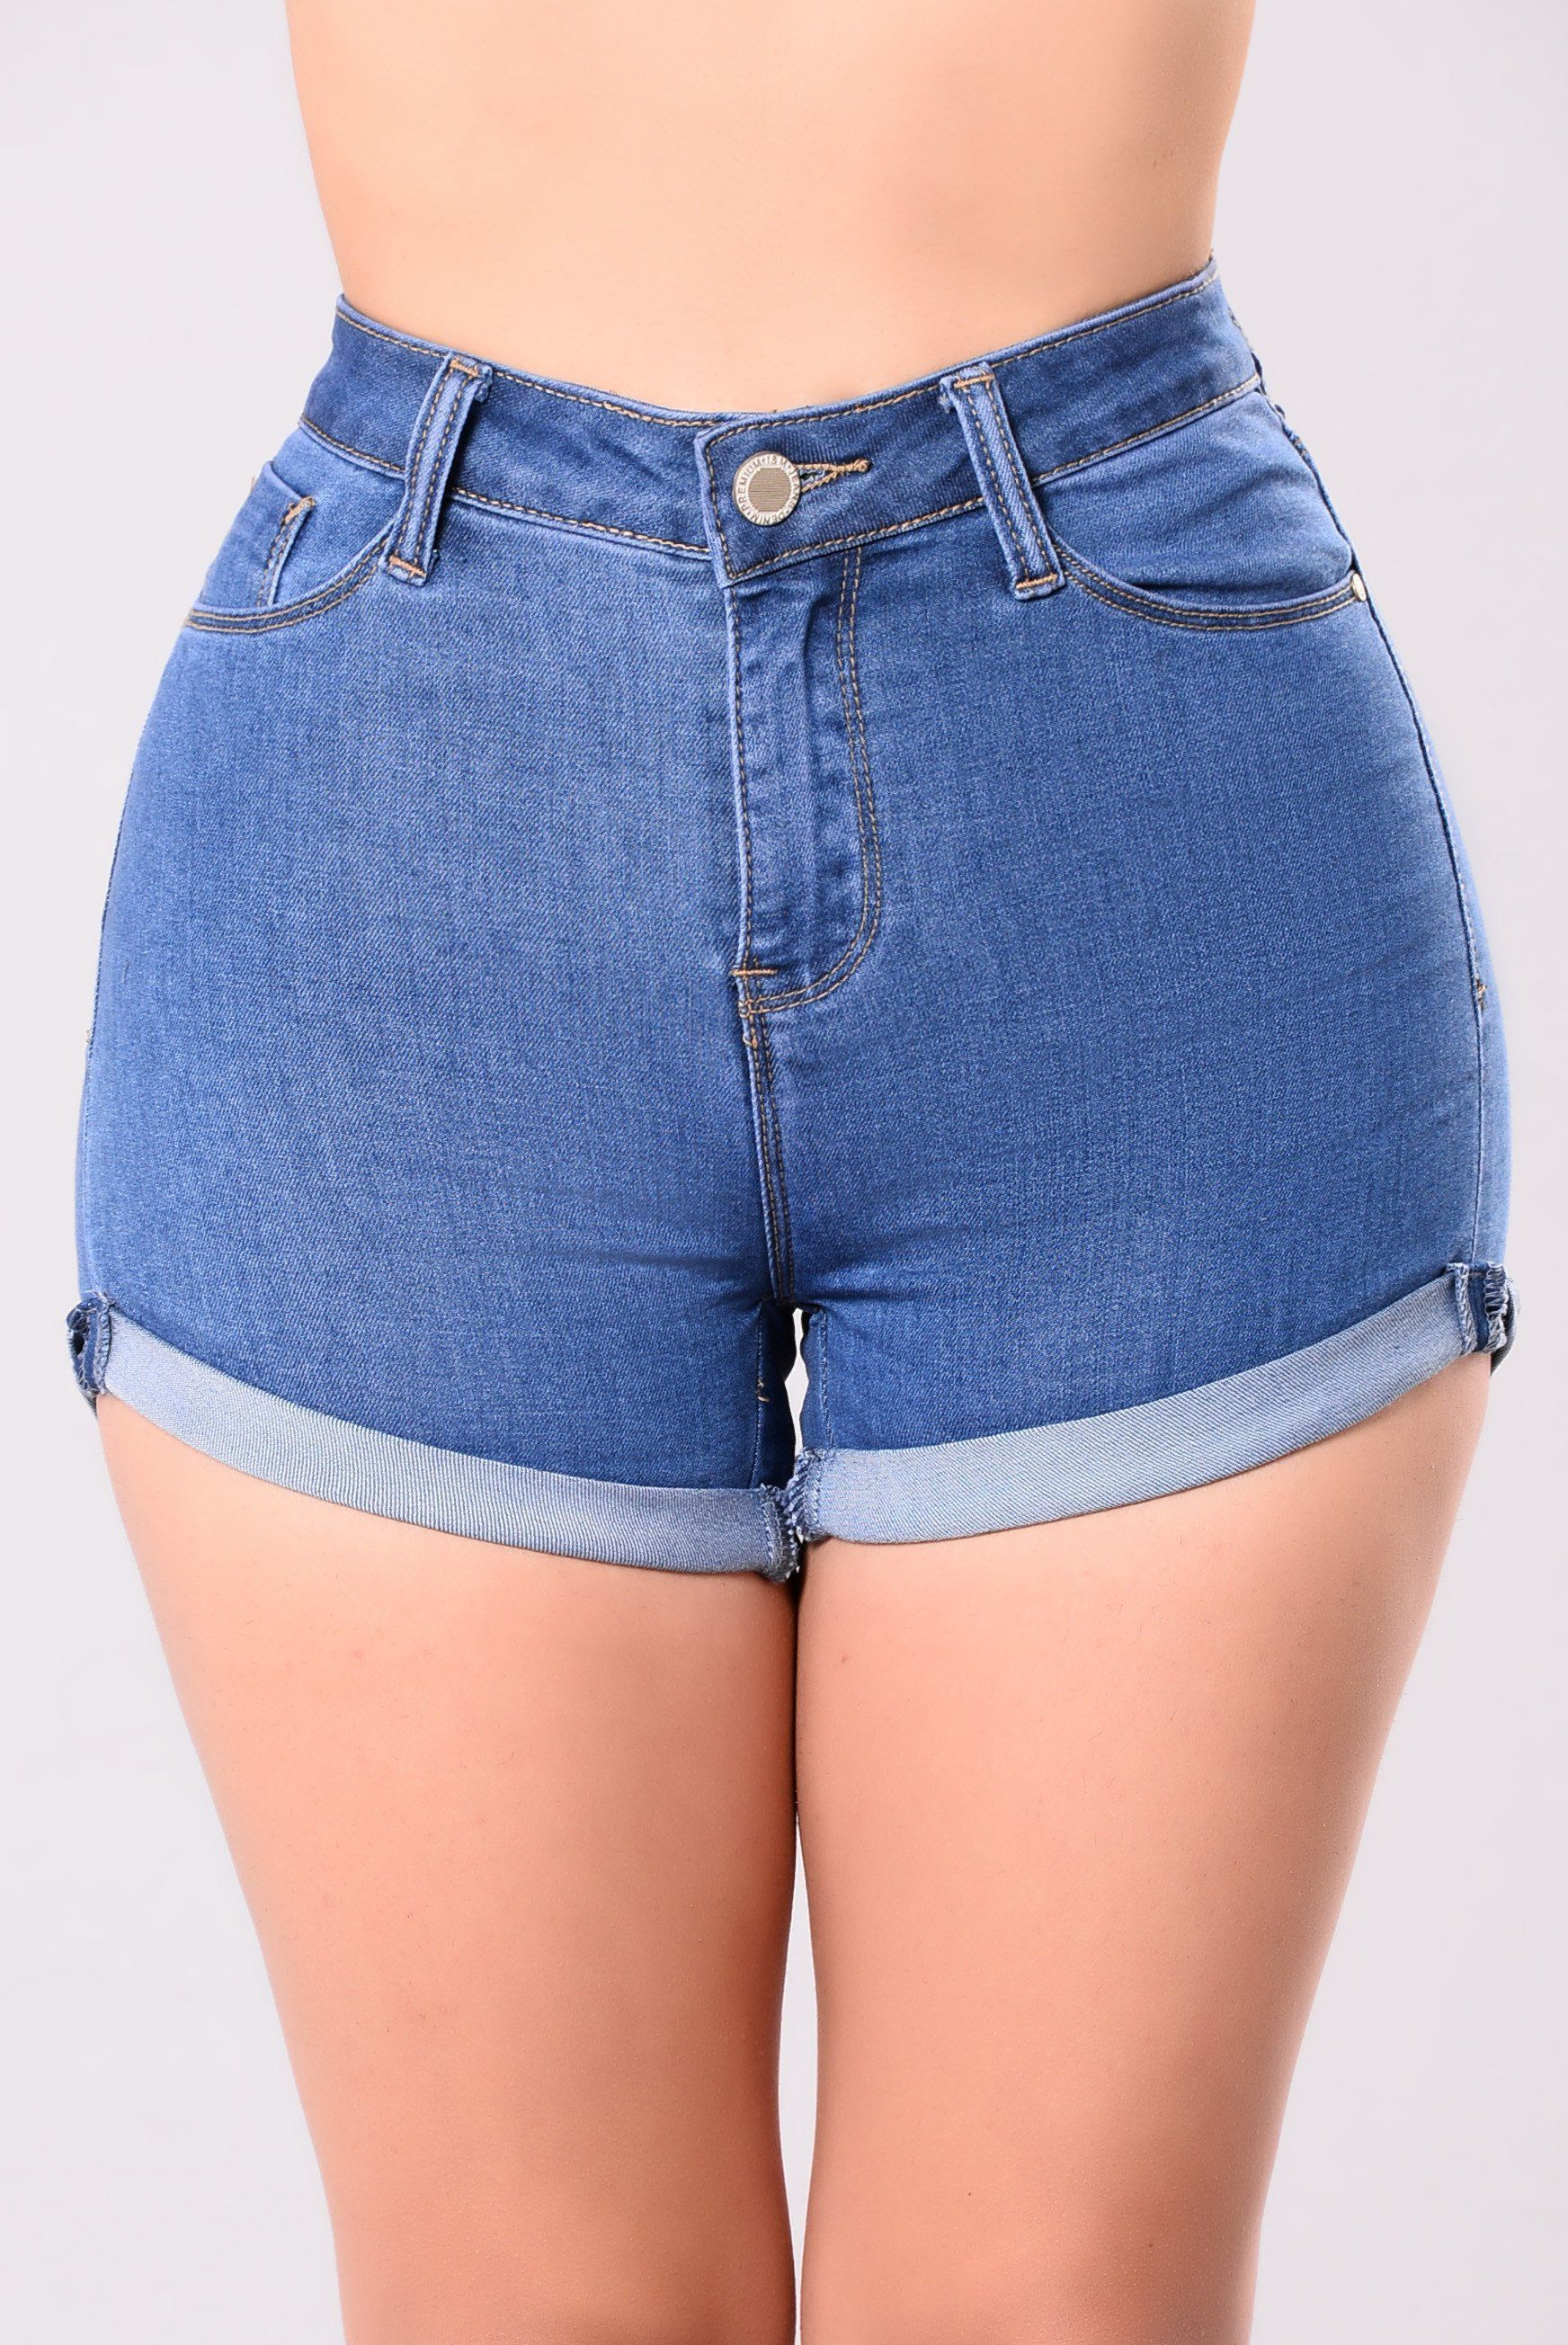 Best Jeans For Women High Waisted Bell Bottom Jeans 70'S